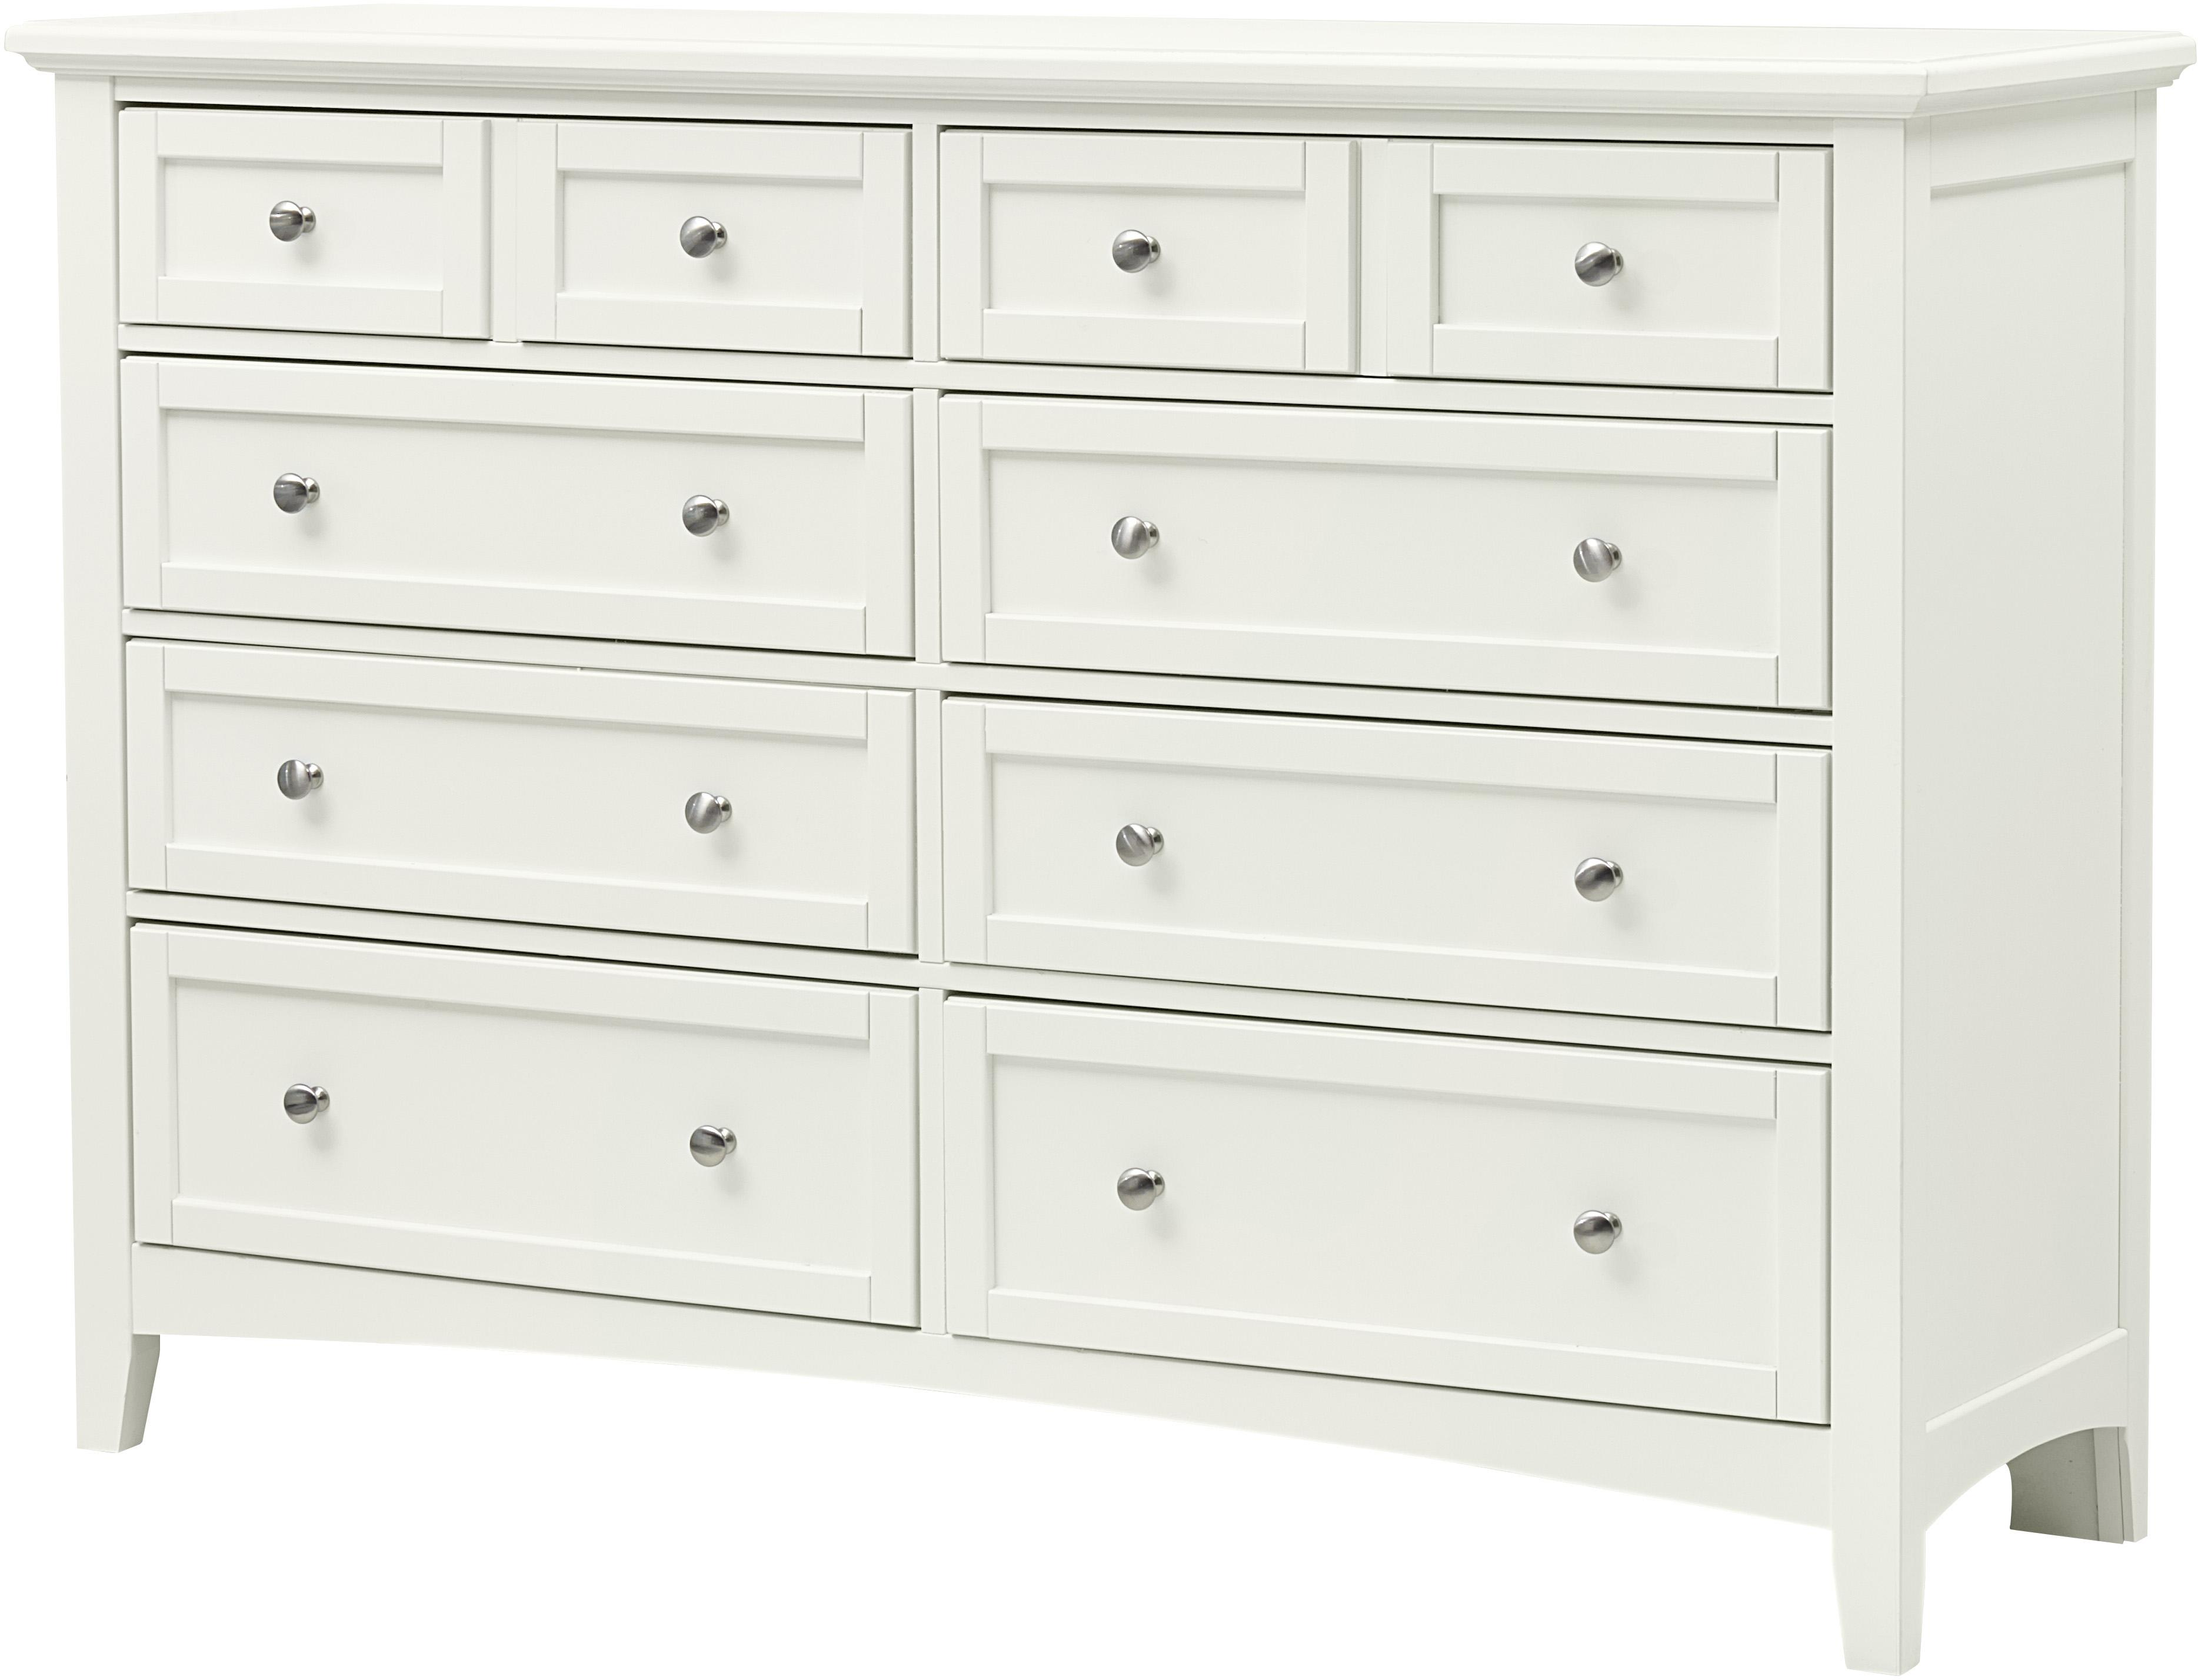 White 8 Drawer Dresser Bonanza Casual Triple Dresser 8 Drawers By Vaughan Bassett At Belfort Furniture